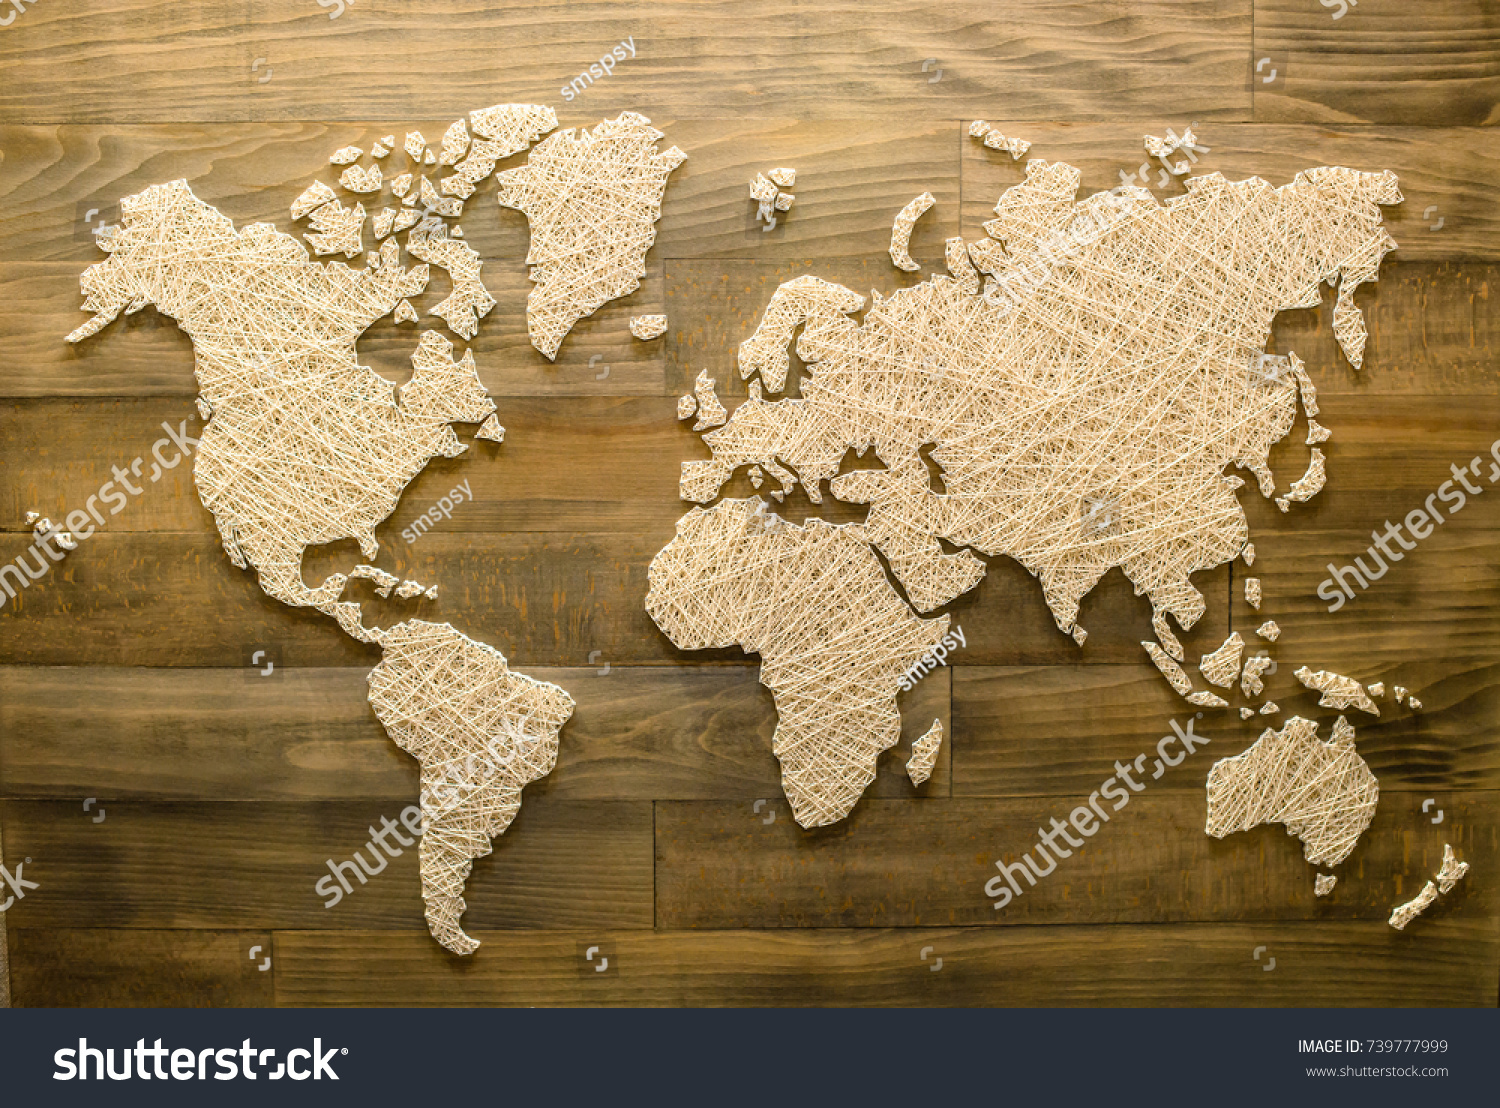 Handmade World Map On Wooden Background Stock Photo (Royalty Free ...